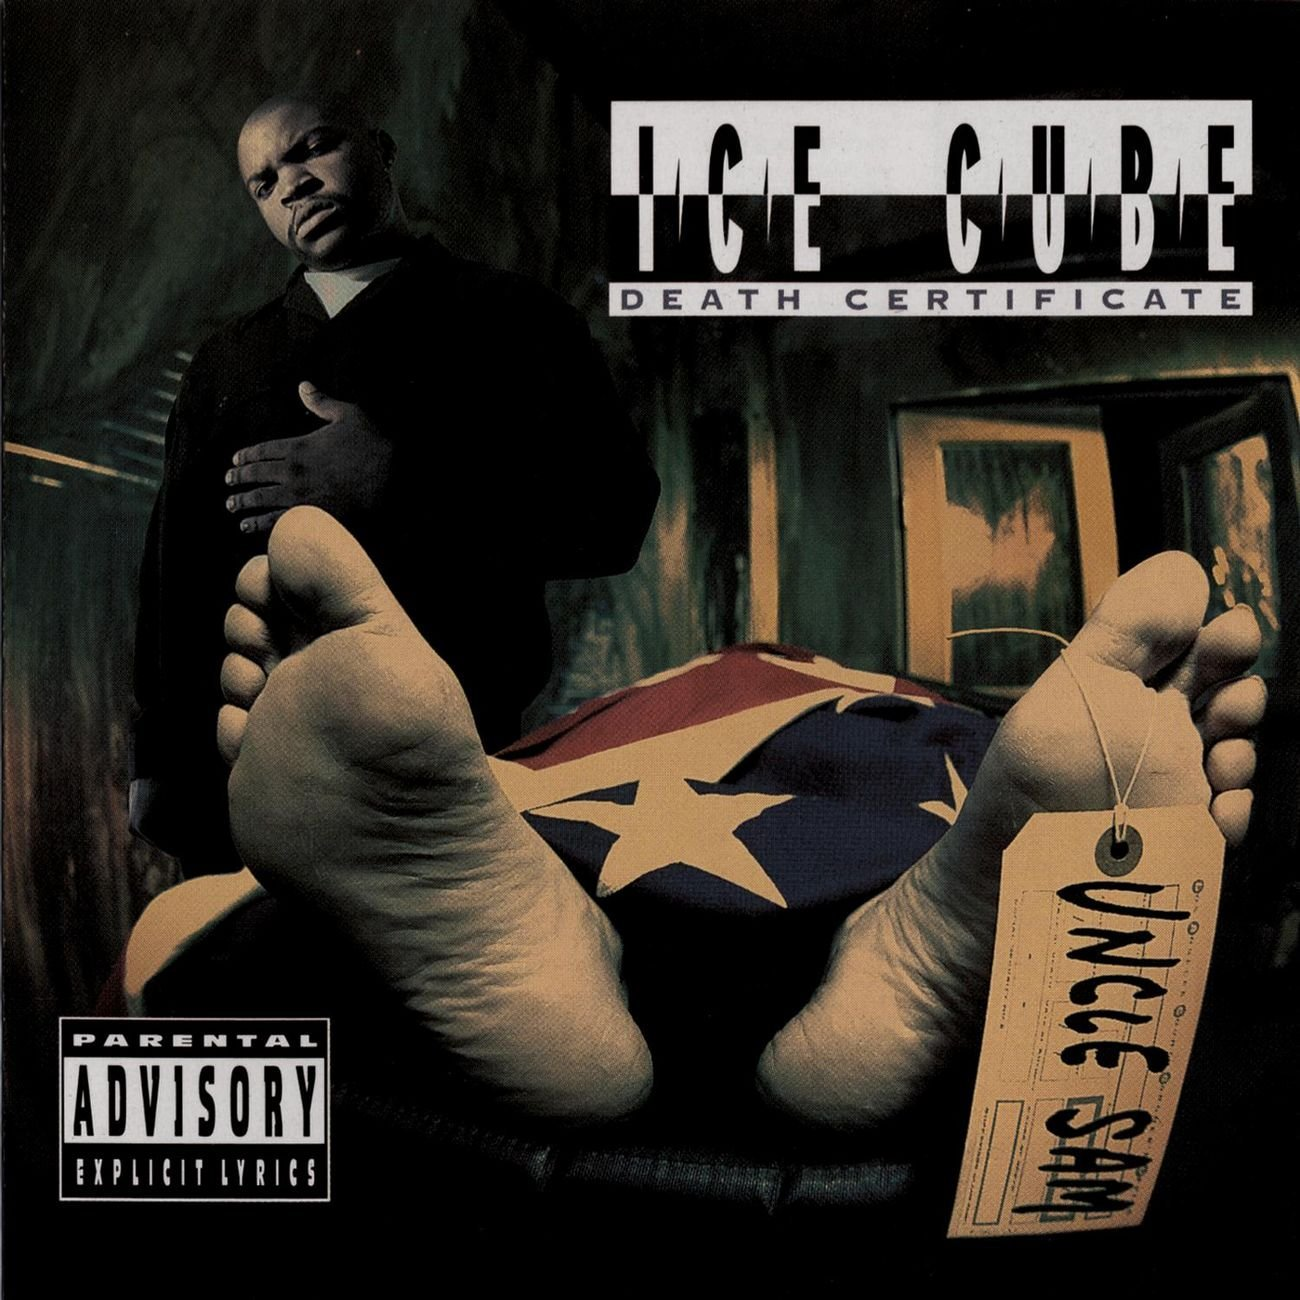 Ice Cube Death Certificate 30 year anniversary